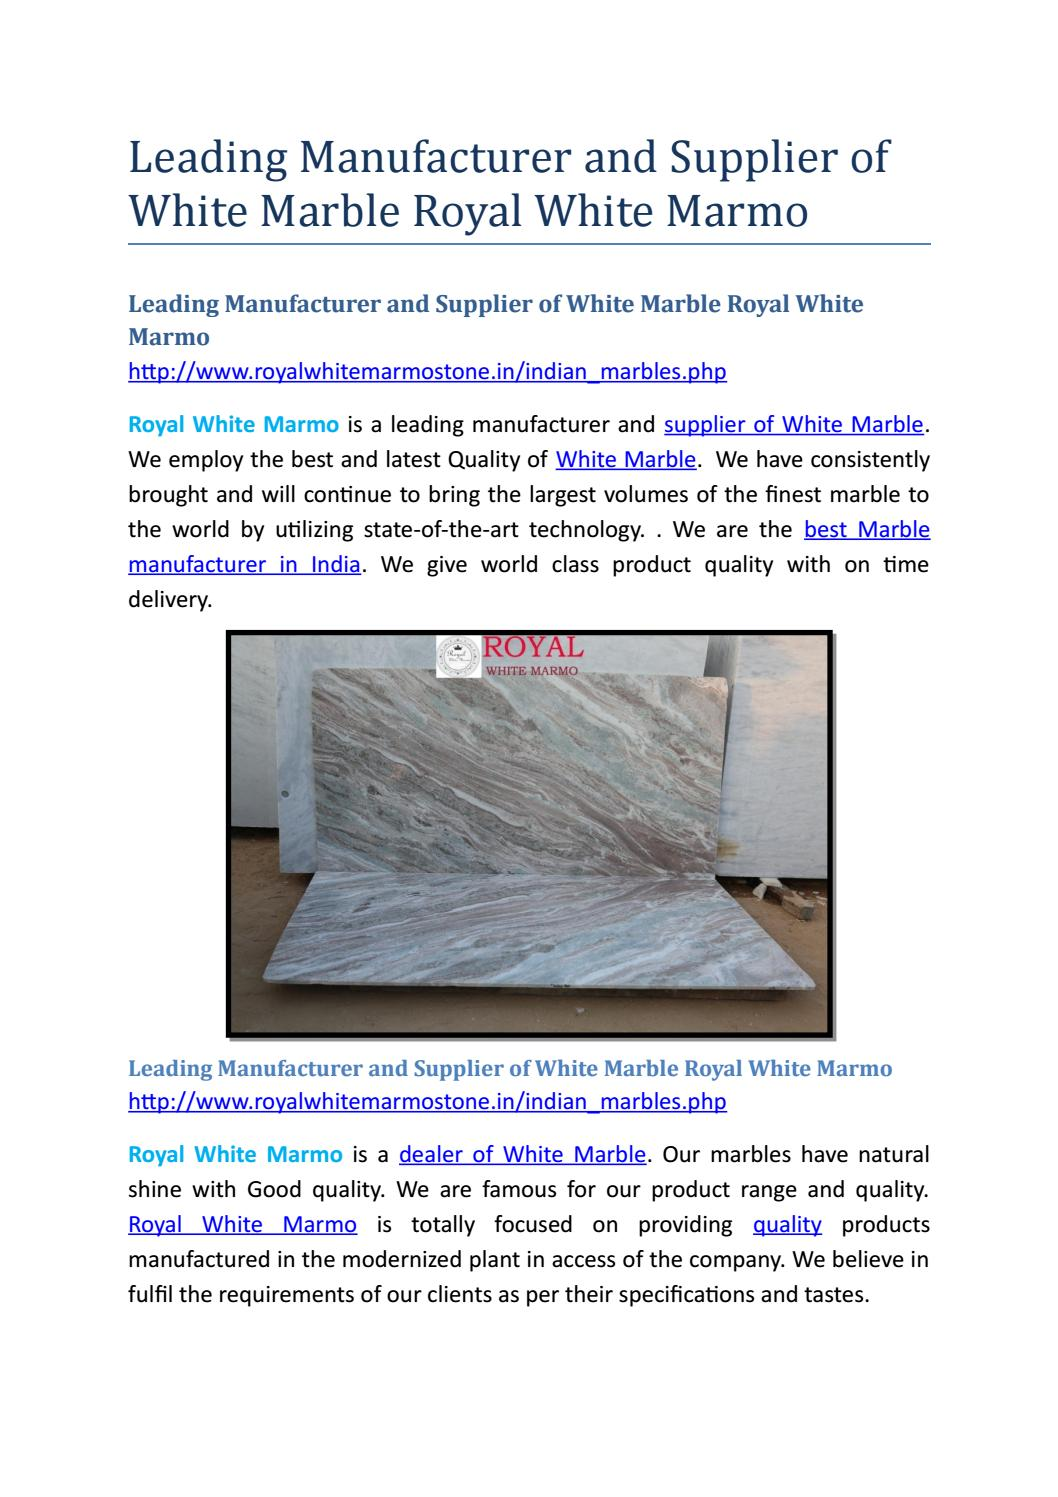 Leading manufacturer and supplier of white marble royal